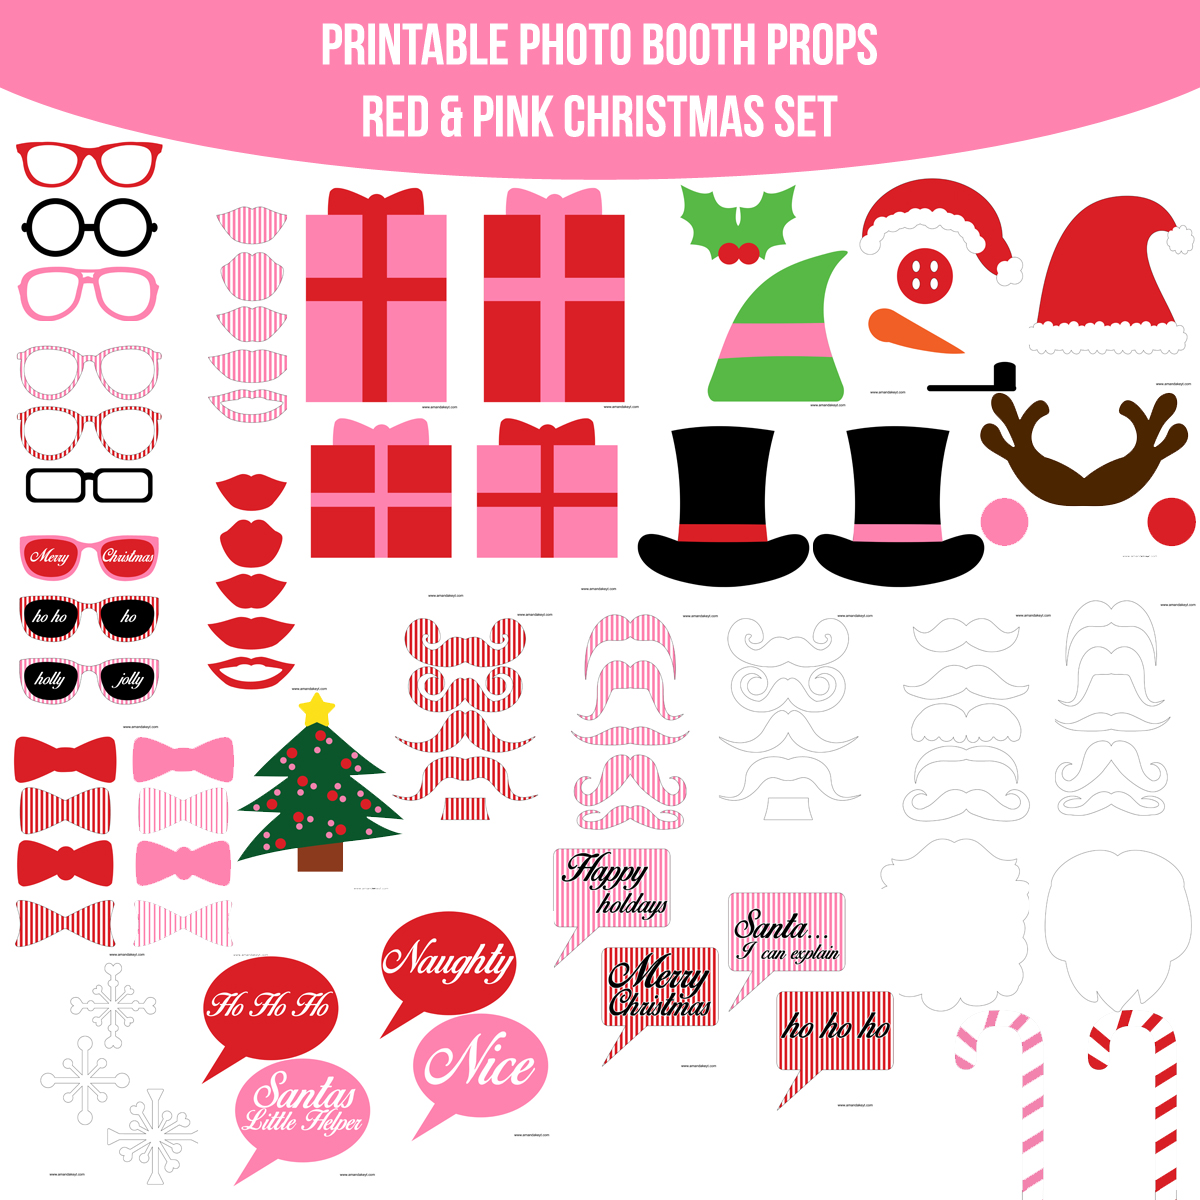 photograph relating to Christmas Photo Booth Props Printable called Fast Obtain Xmas Purple Printable Photograph Booth Prop Established Amanda Keyt Printable Strategies